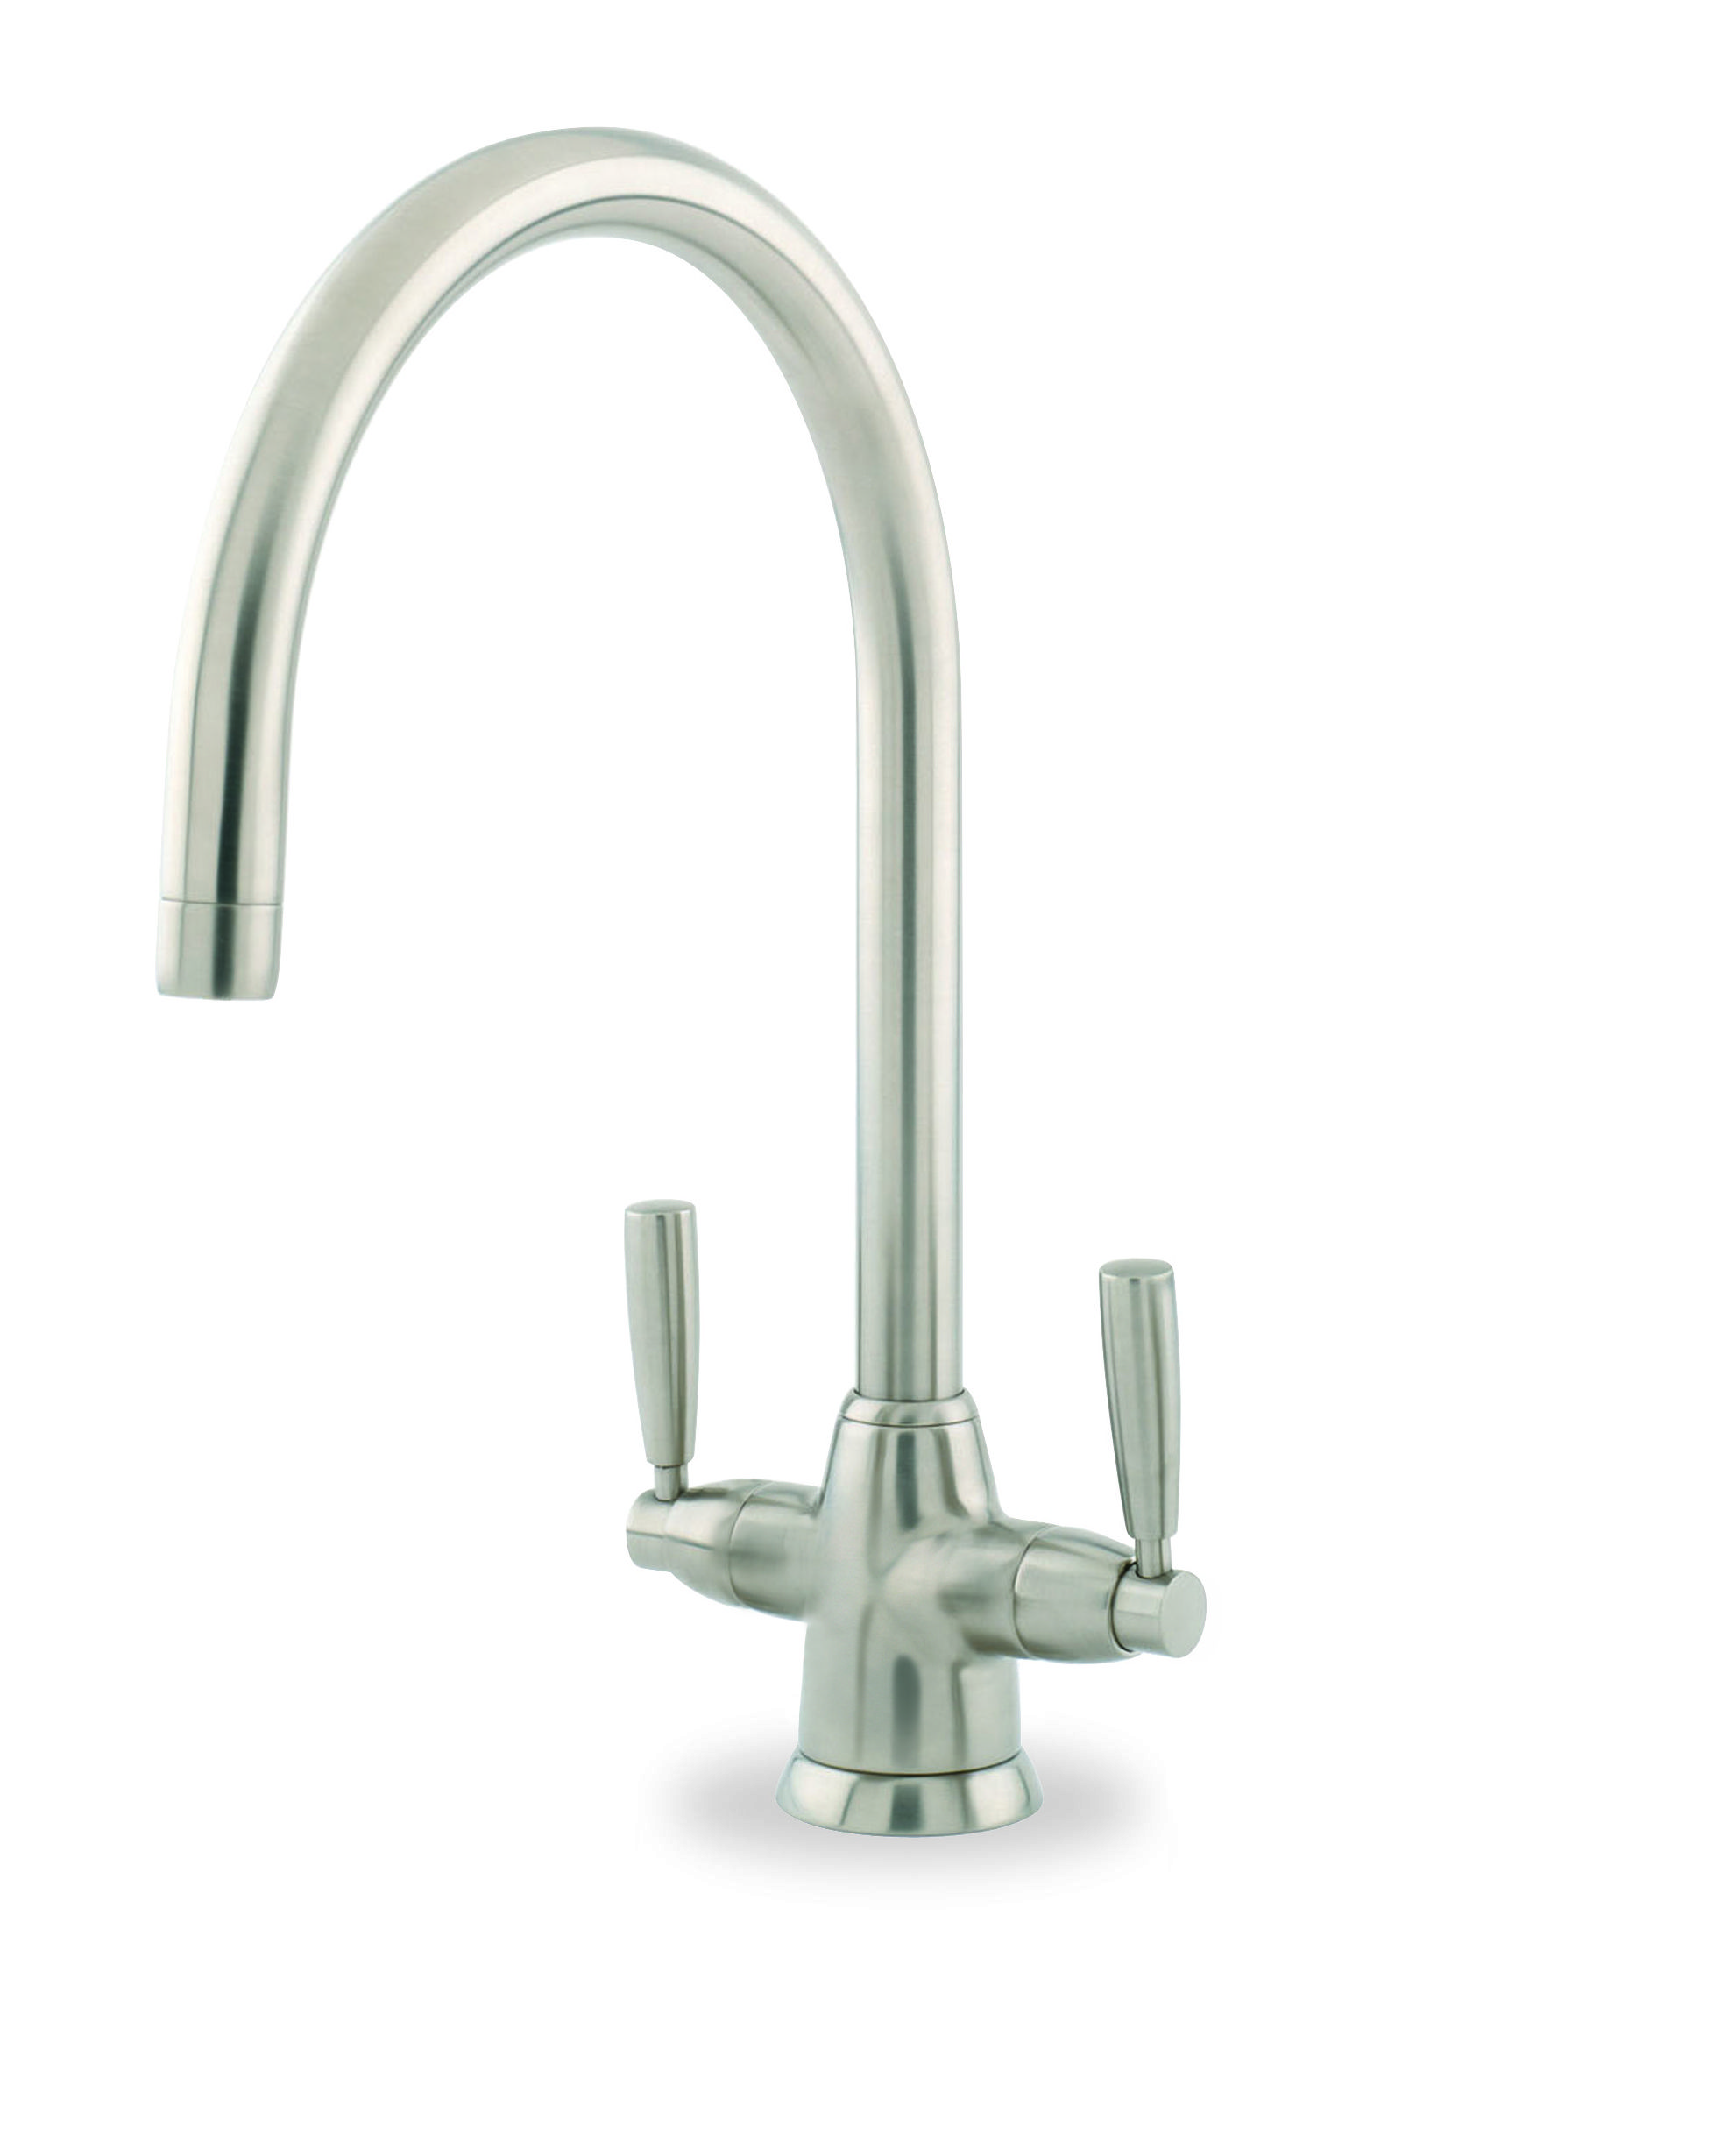 Perrin & Rowe Metis Sink Mixer in Pewter complete with Lever Handles ...